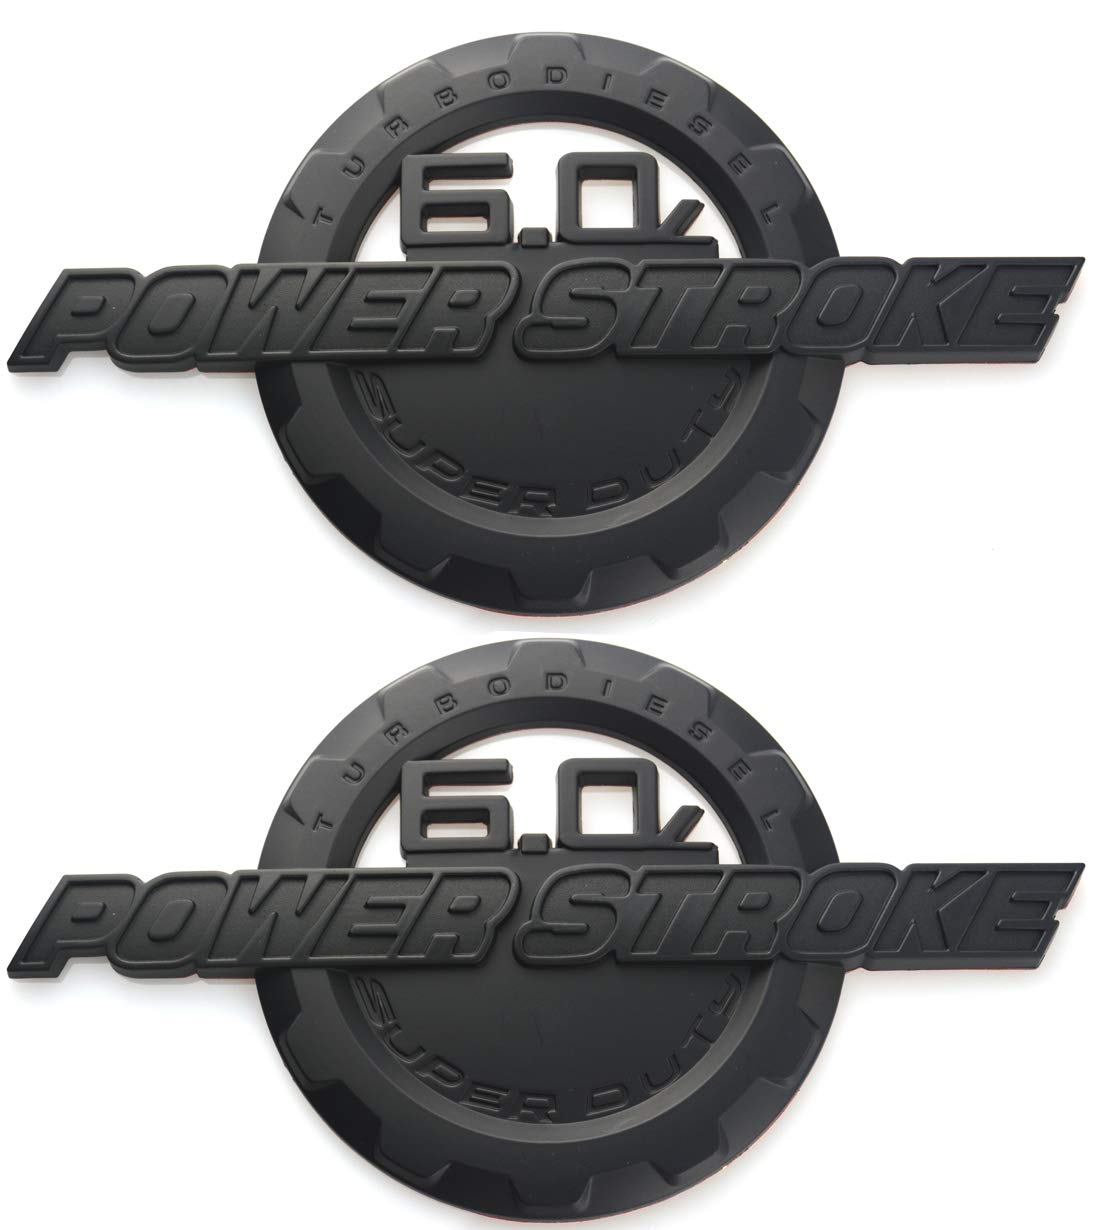 Black//Red 2x 6.0L Liter LS2 Real Aluminum Metal Engine Hood Emblem Badge Nameplate Crate compatible with Universal Cars